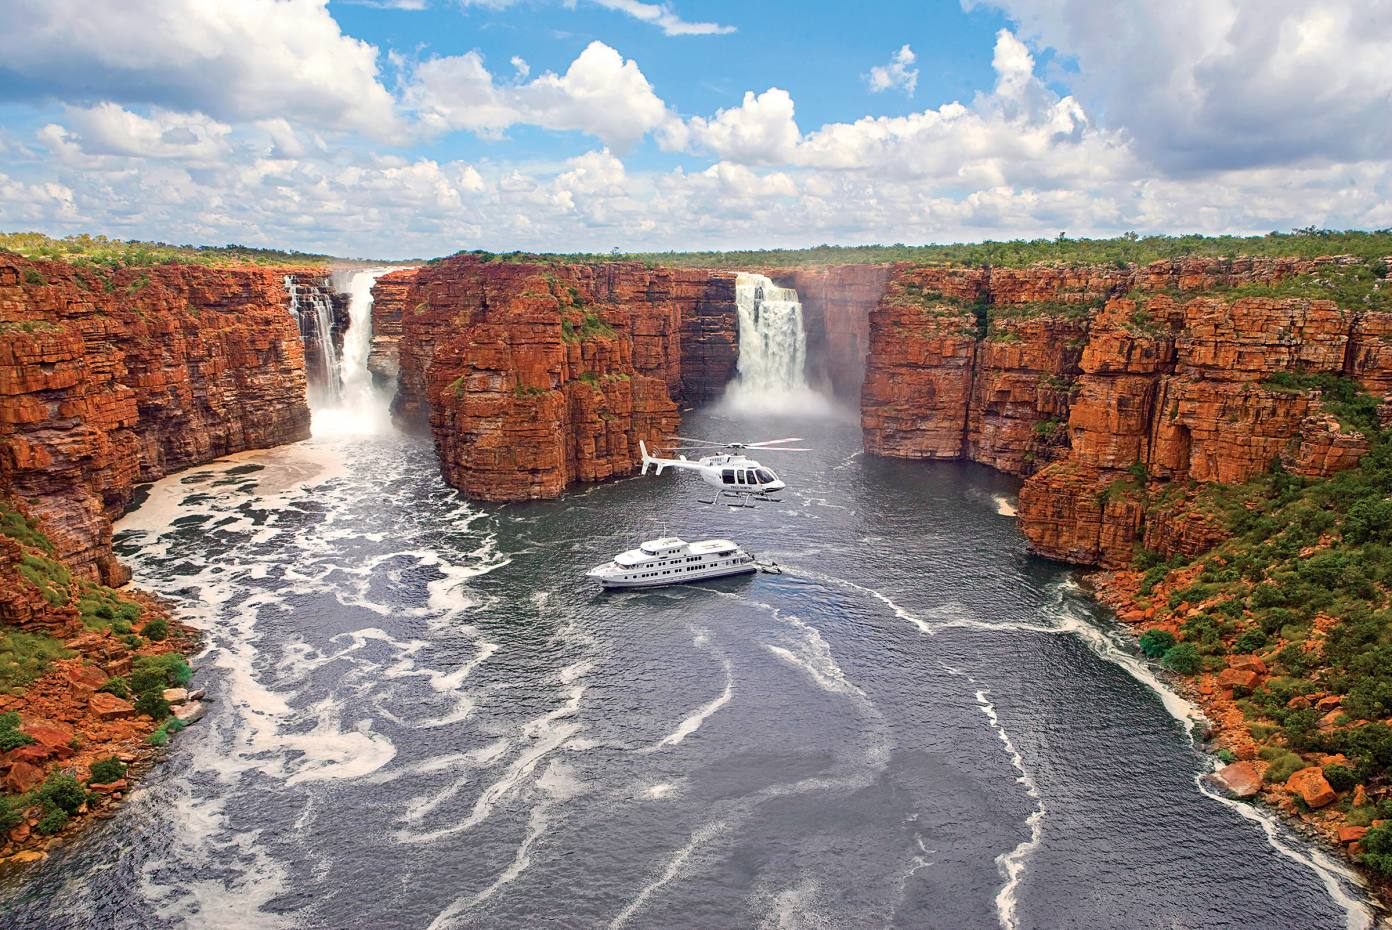 The True North exploring the rugged prehistoric region of the Kimberley in northwest Australia